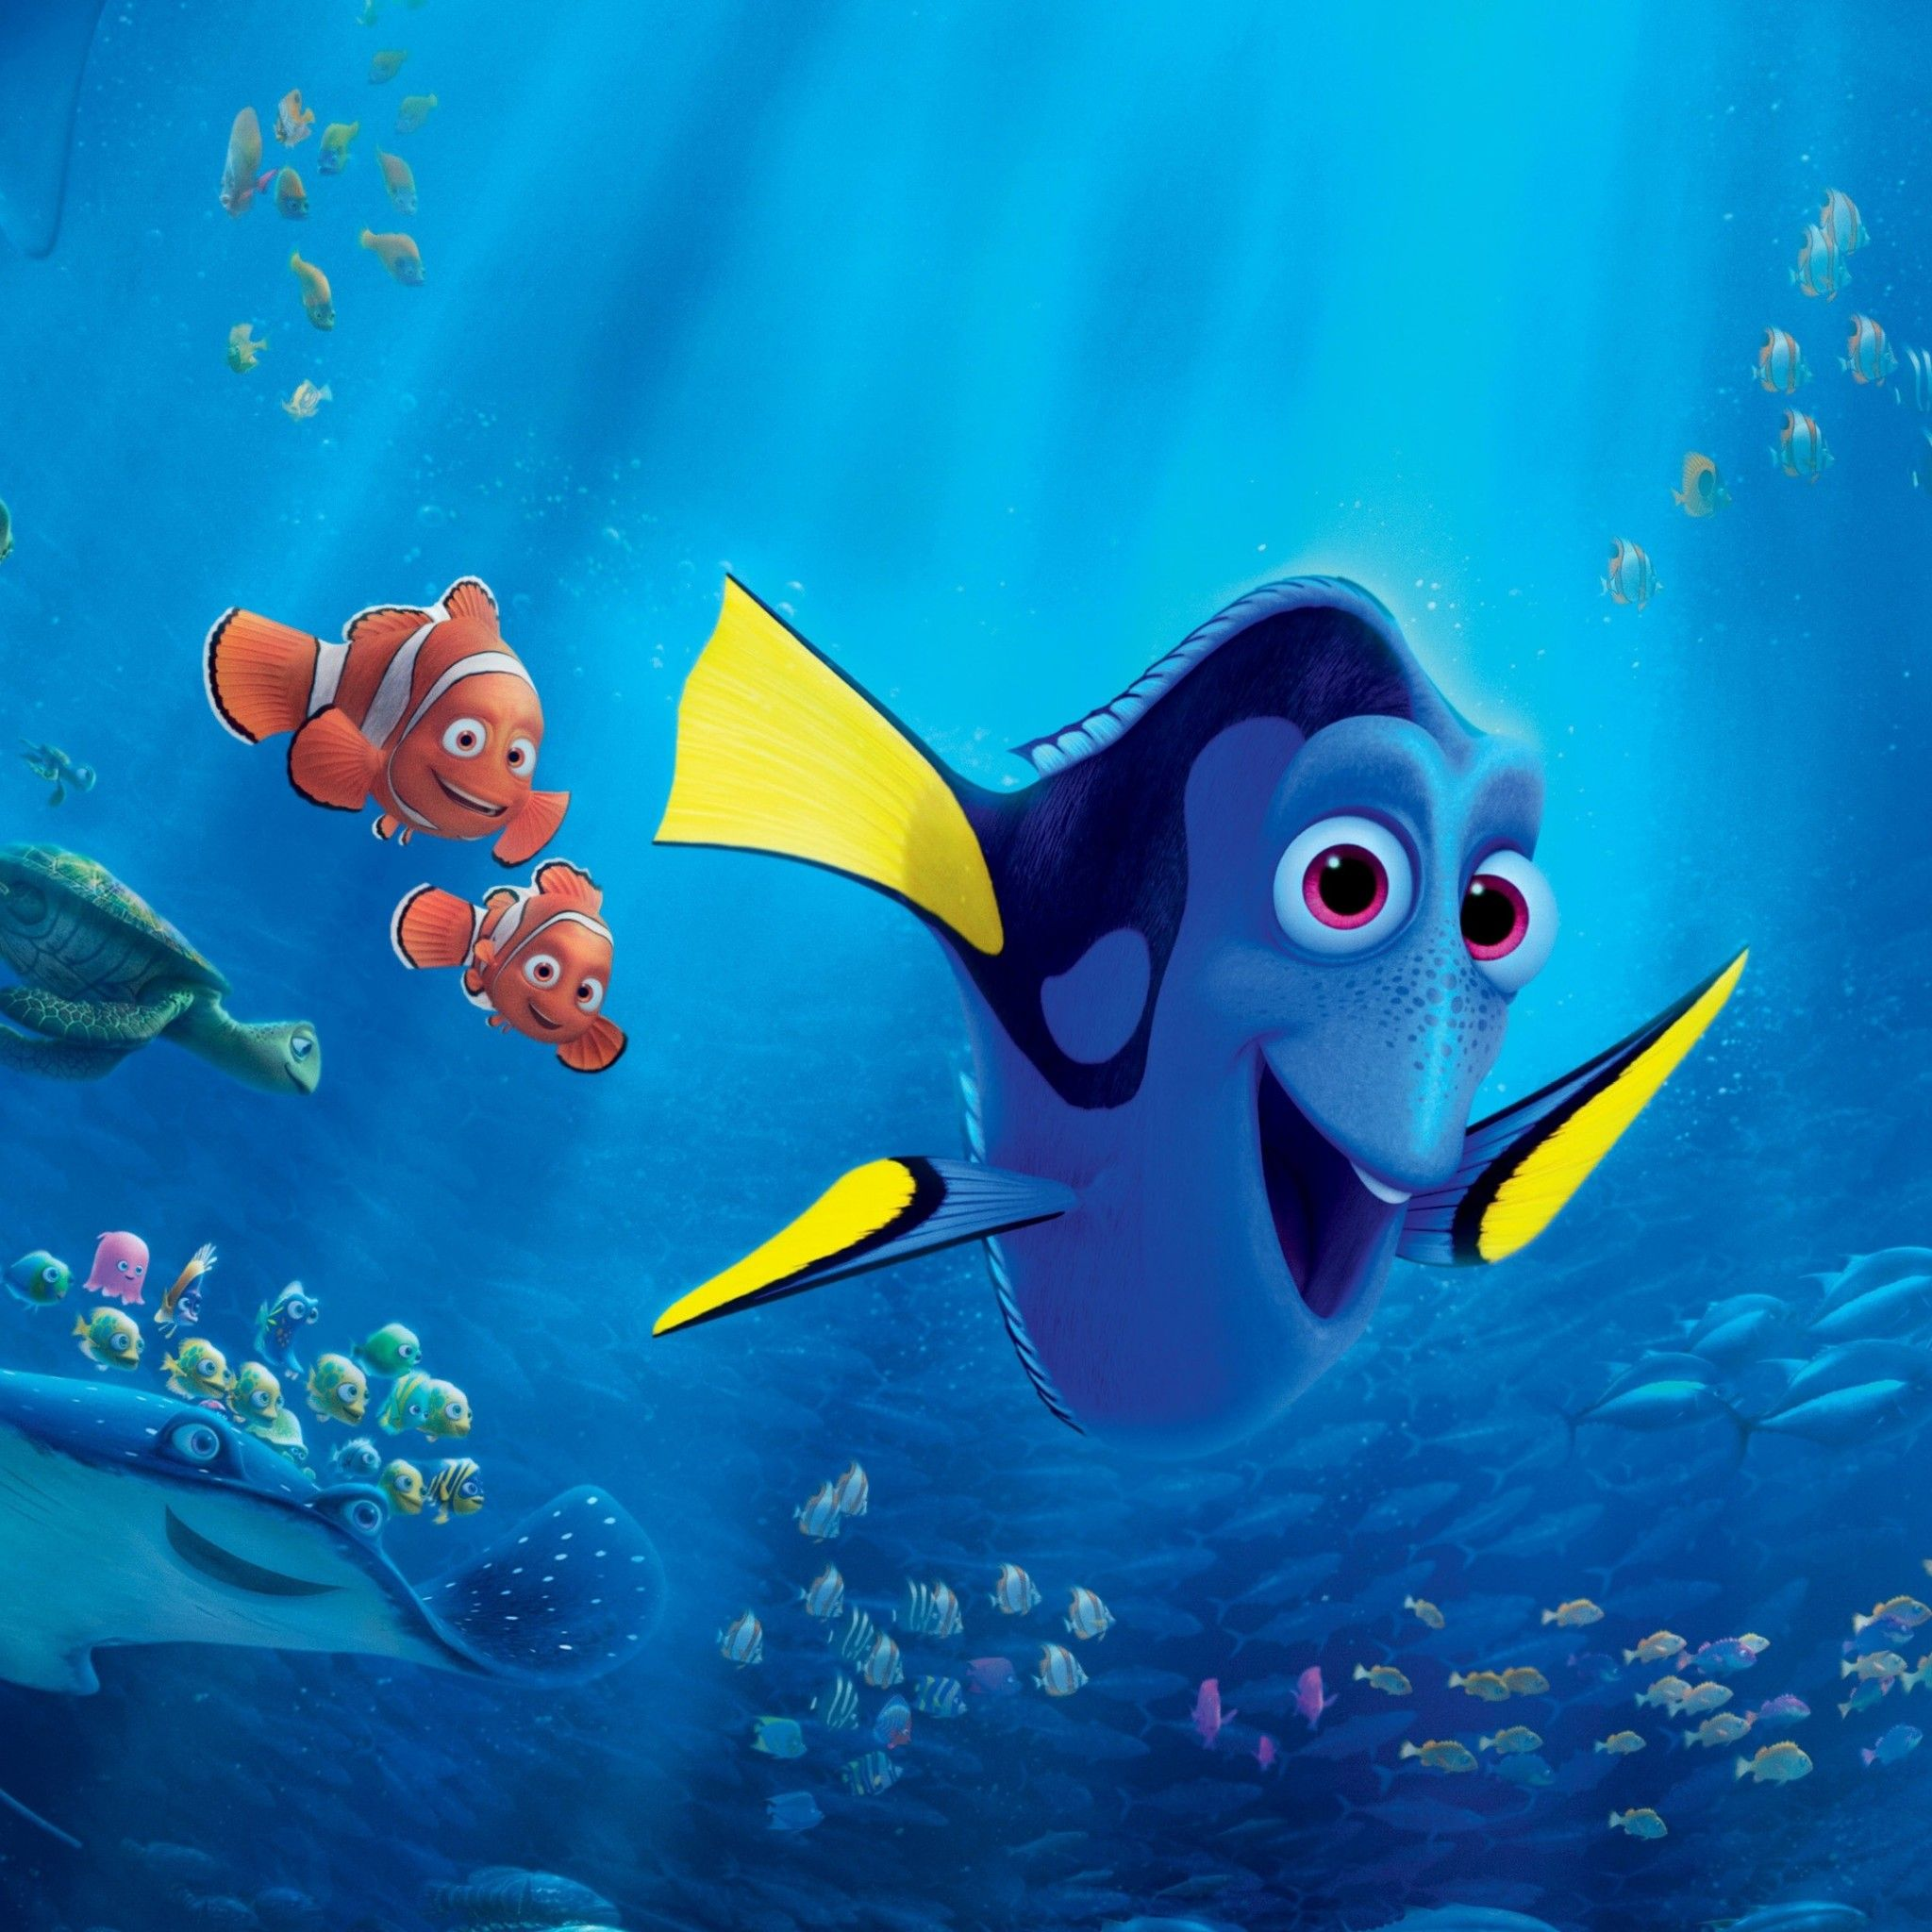 Finding Dory Downloadable Wallpaper For Ios Android Phones For The Love Of Pixar Wallpaper Iphone Disney Disney Wallpaper Cute Disney Wallpaper